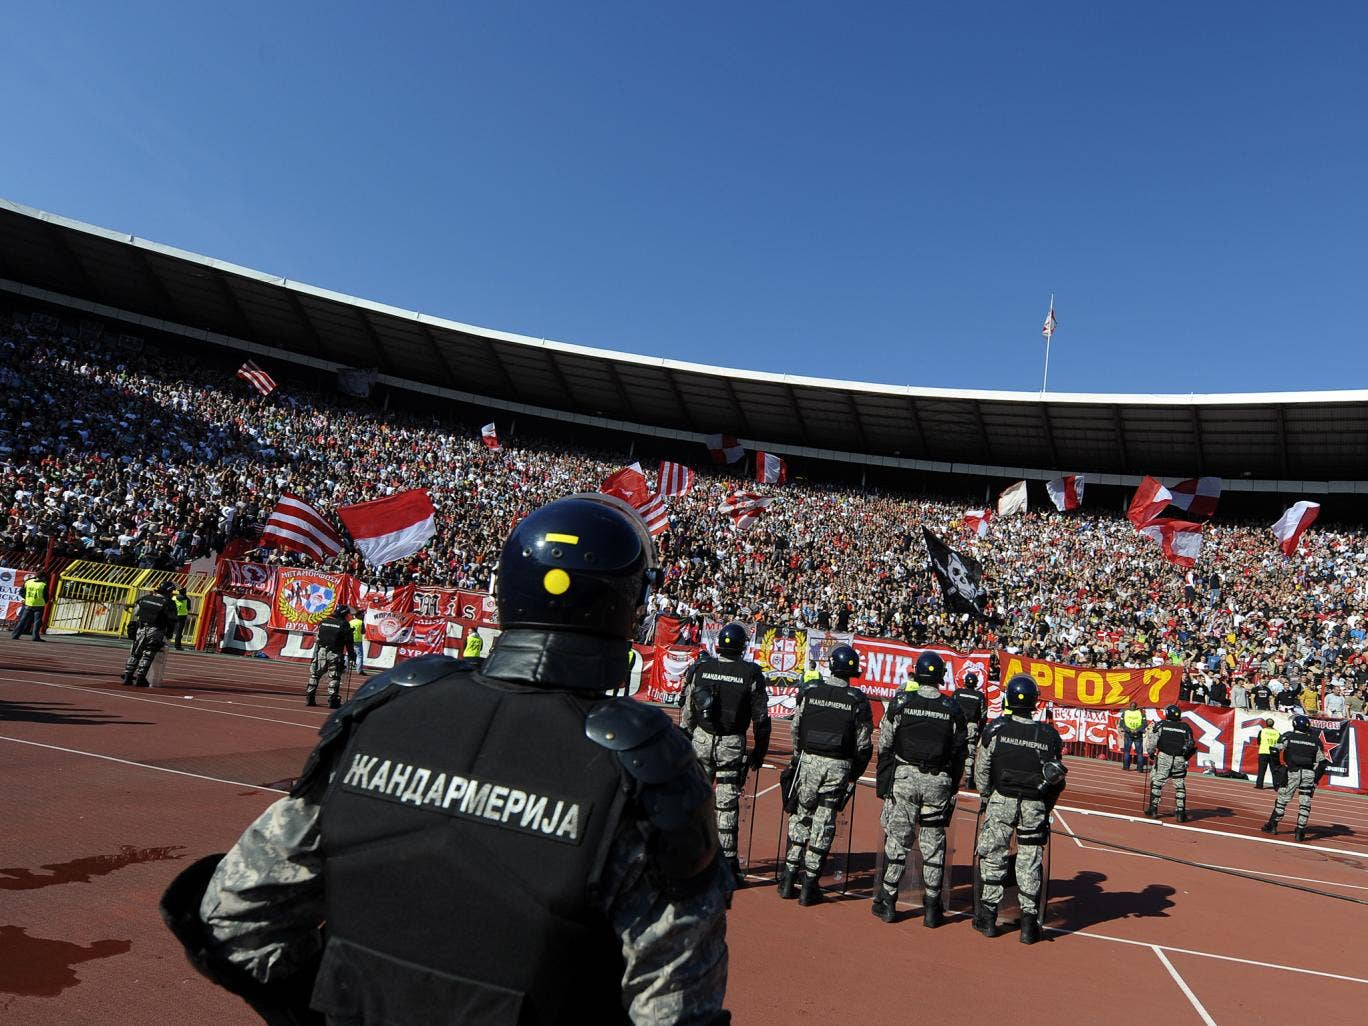 The derby on Saturday is likely to be played under tight security monitored by mounted and riot police amid fears of crowd trouble, which has plagued Serbian soccer in the past 20 years